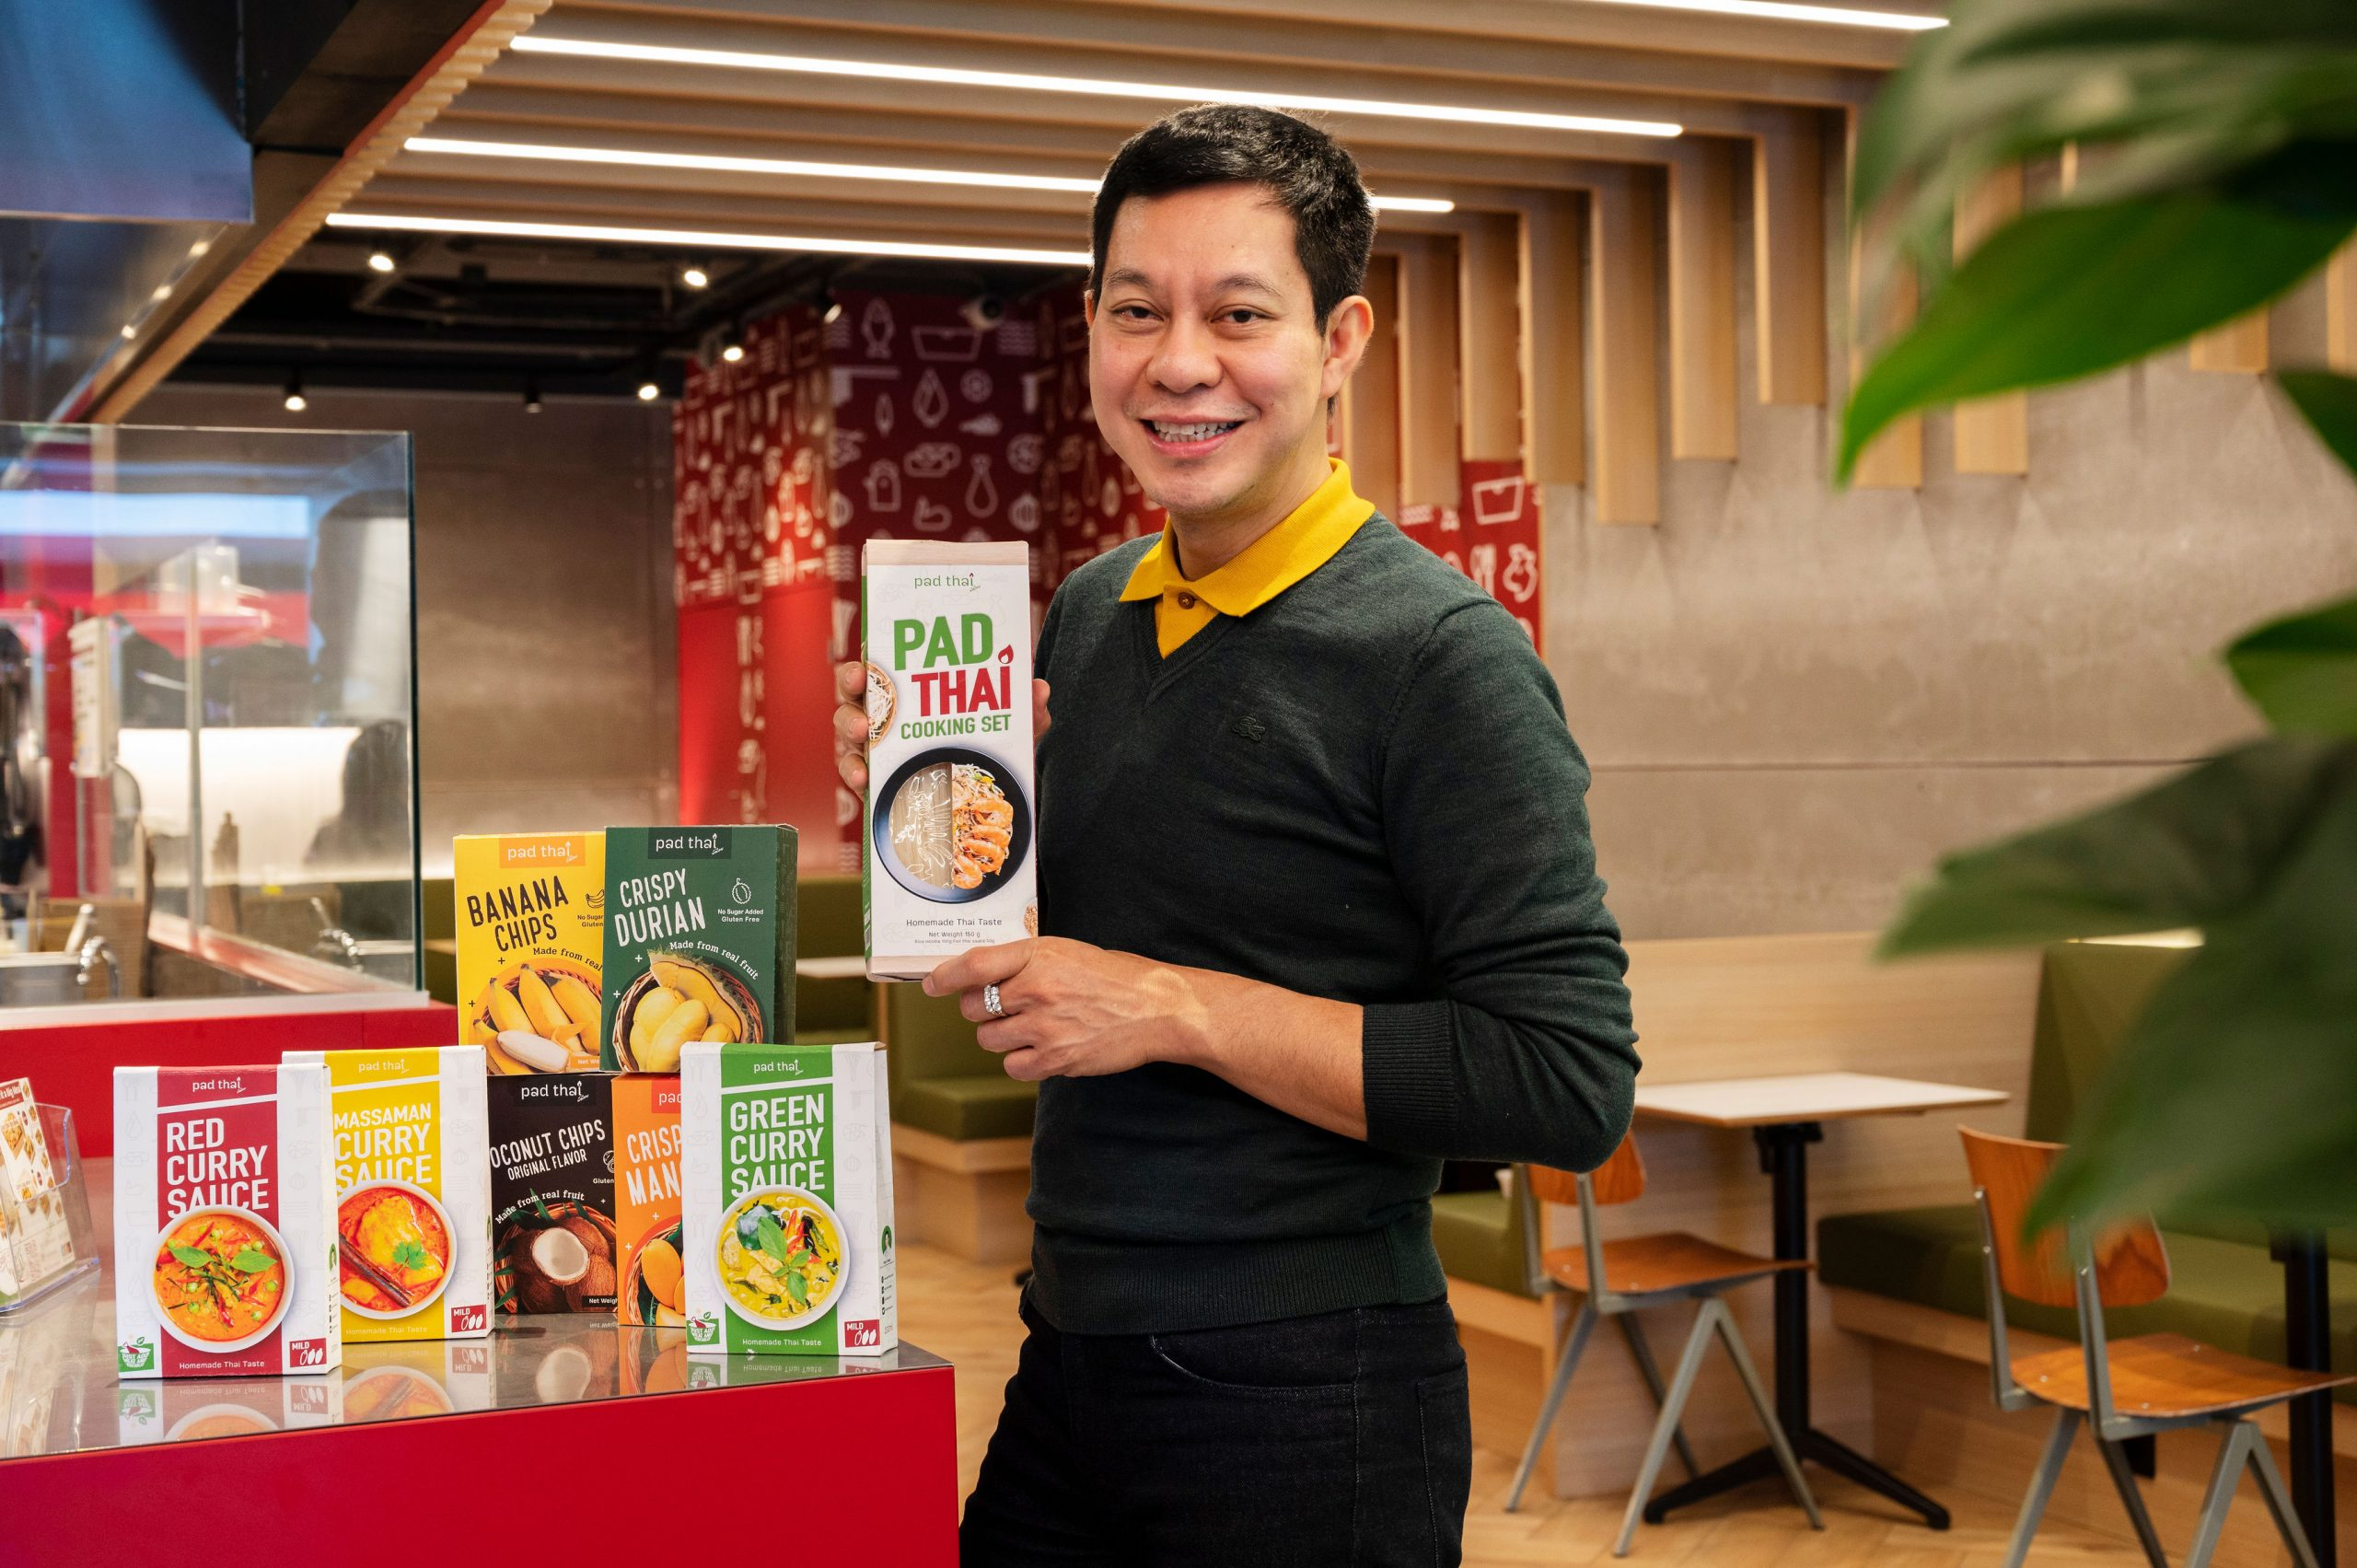 Pad Thai's founder Tham holding a package of the Pad Thai Cooking Set